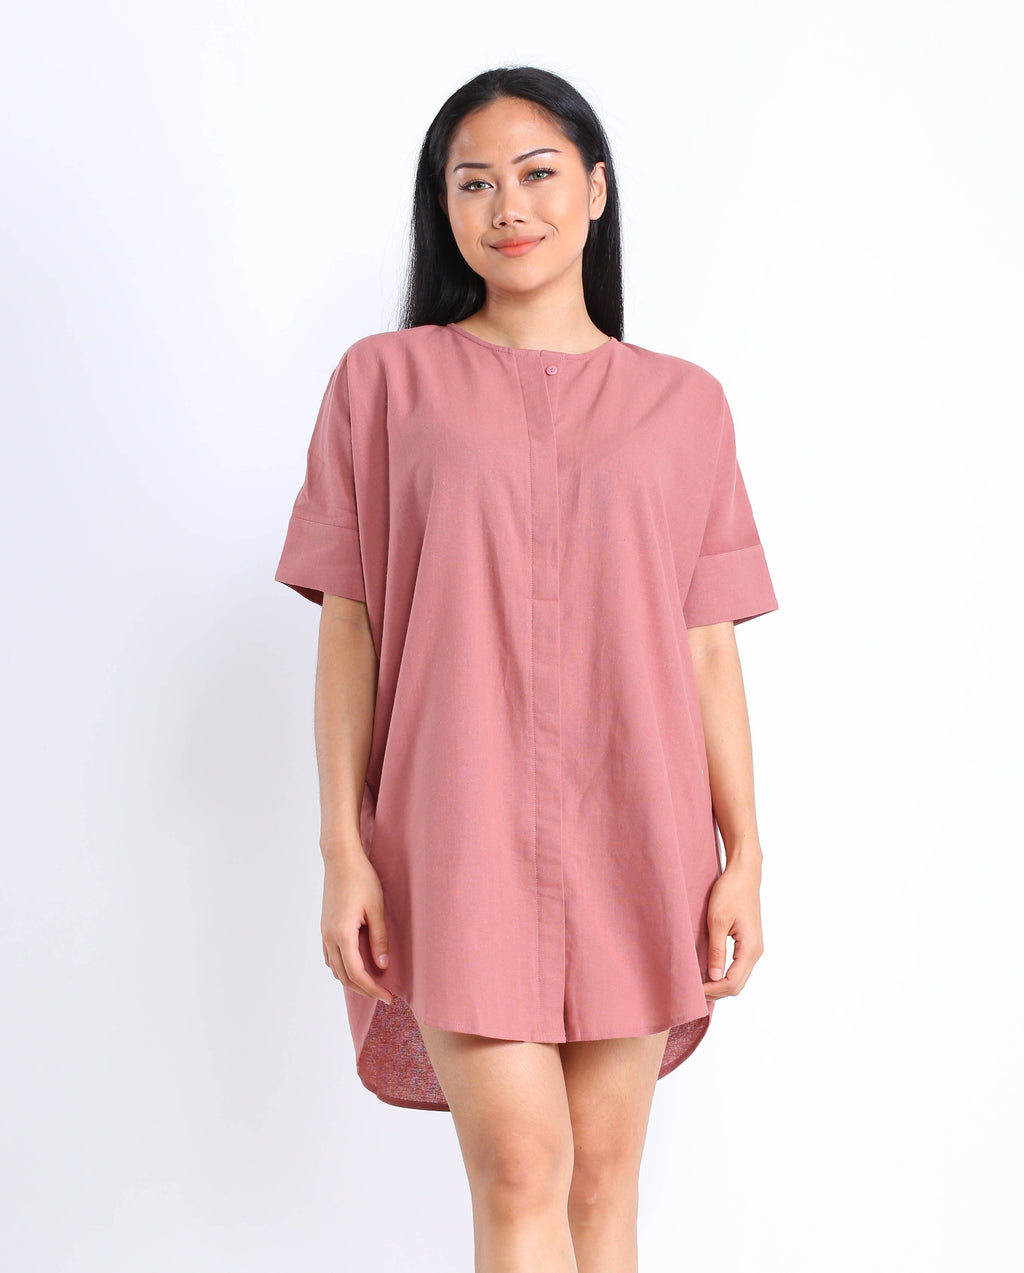 Lula Shirtdress in Dusty Rose